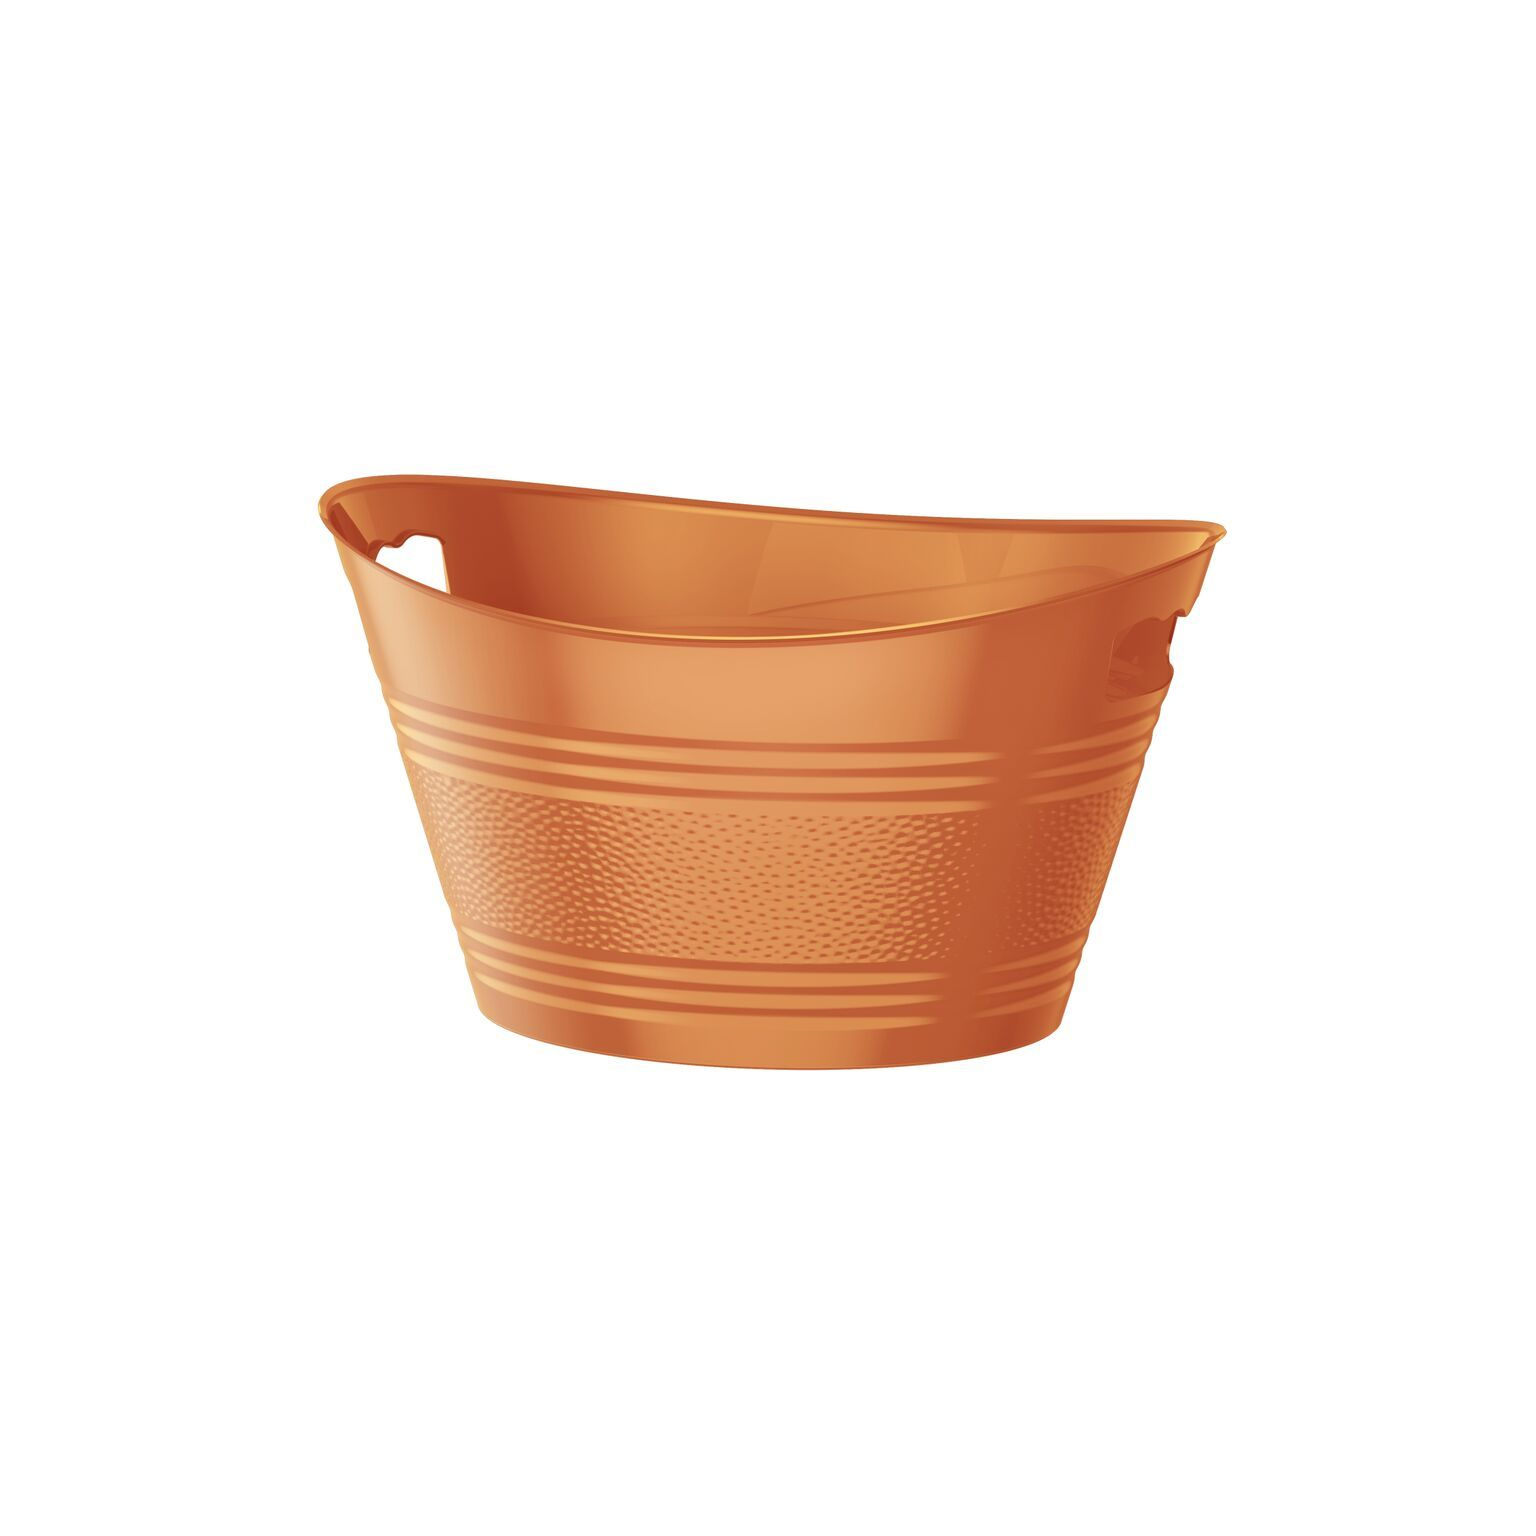 1 Gallon The Bucket Copper Gallon Bucket